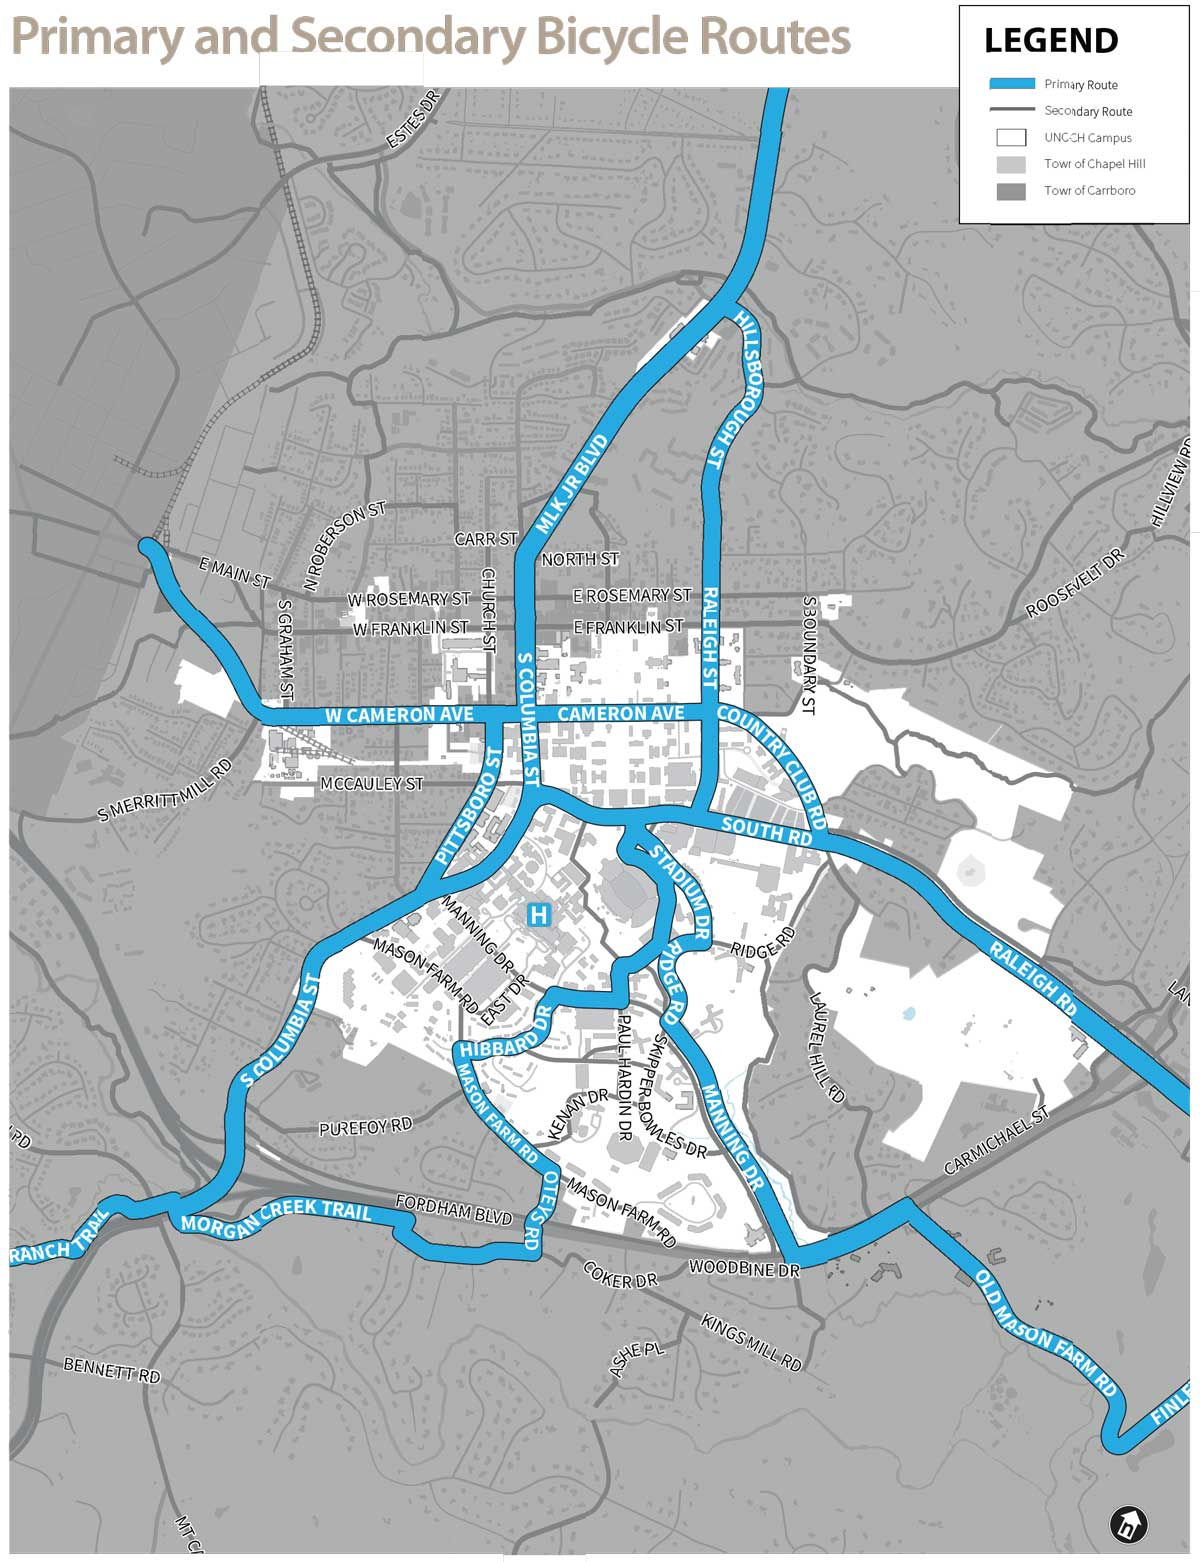 Primary and Secondary Bicycle Routes